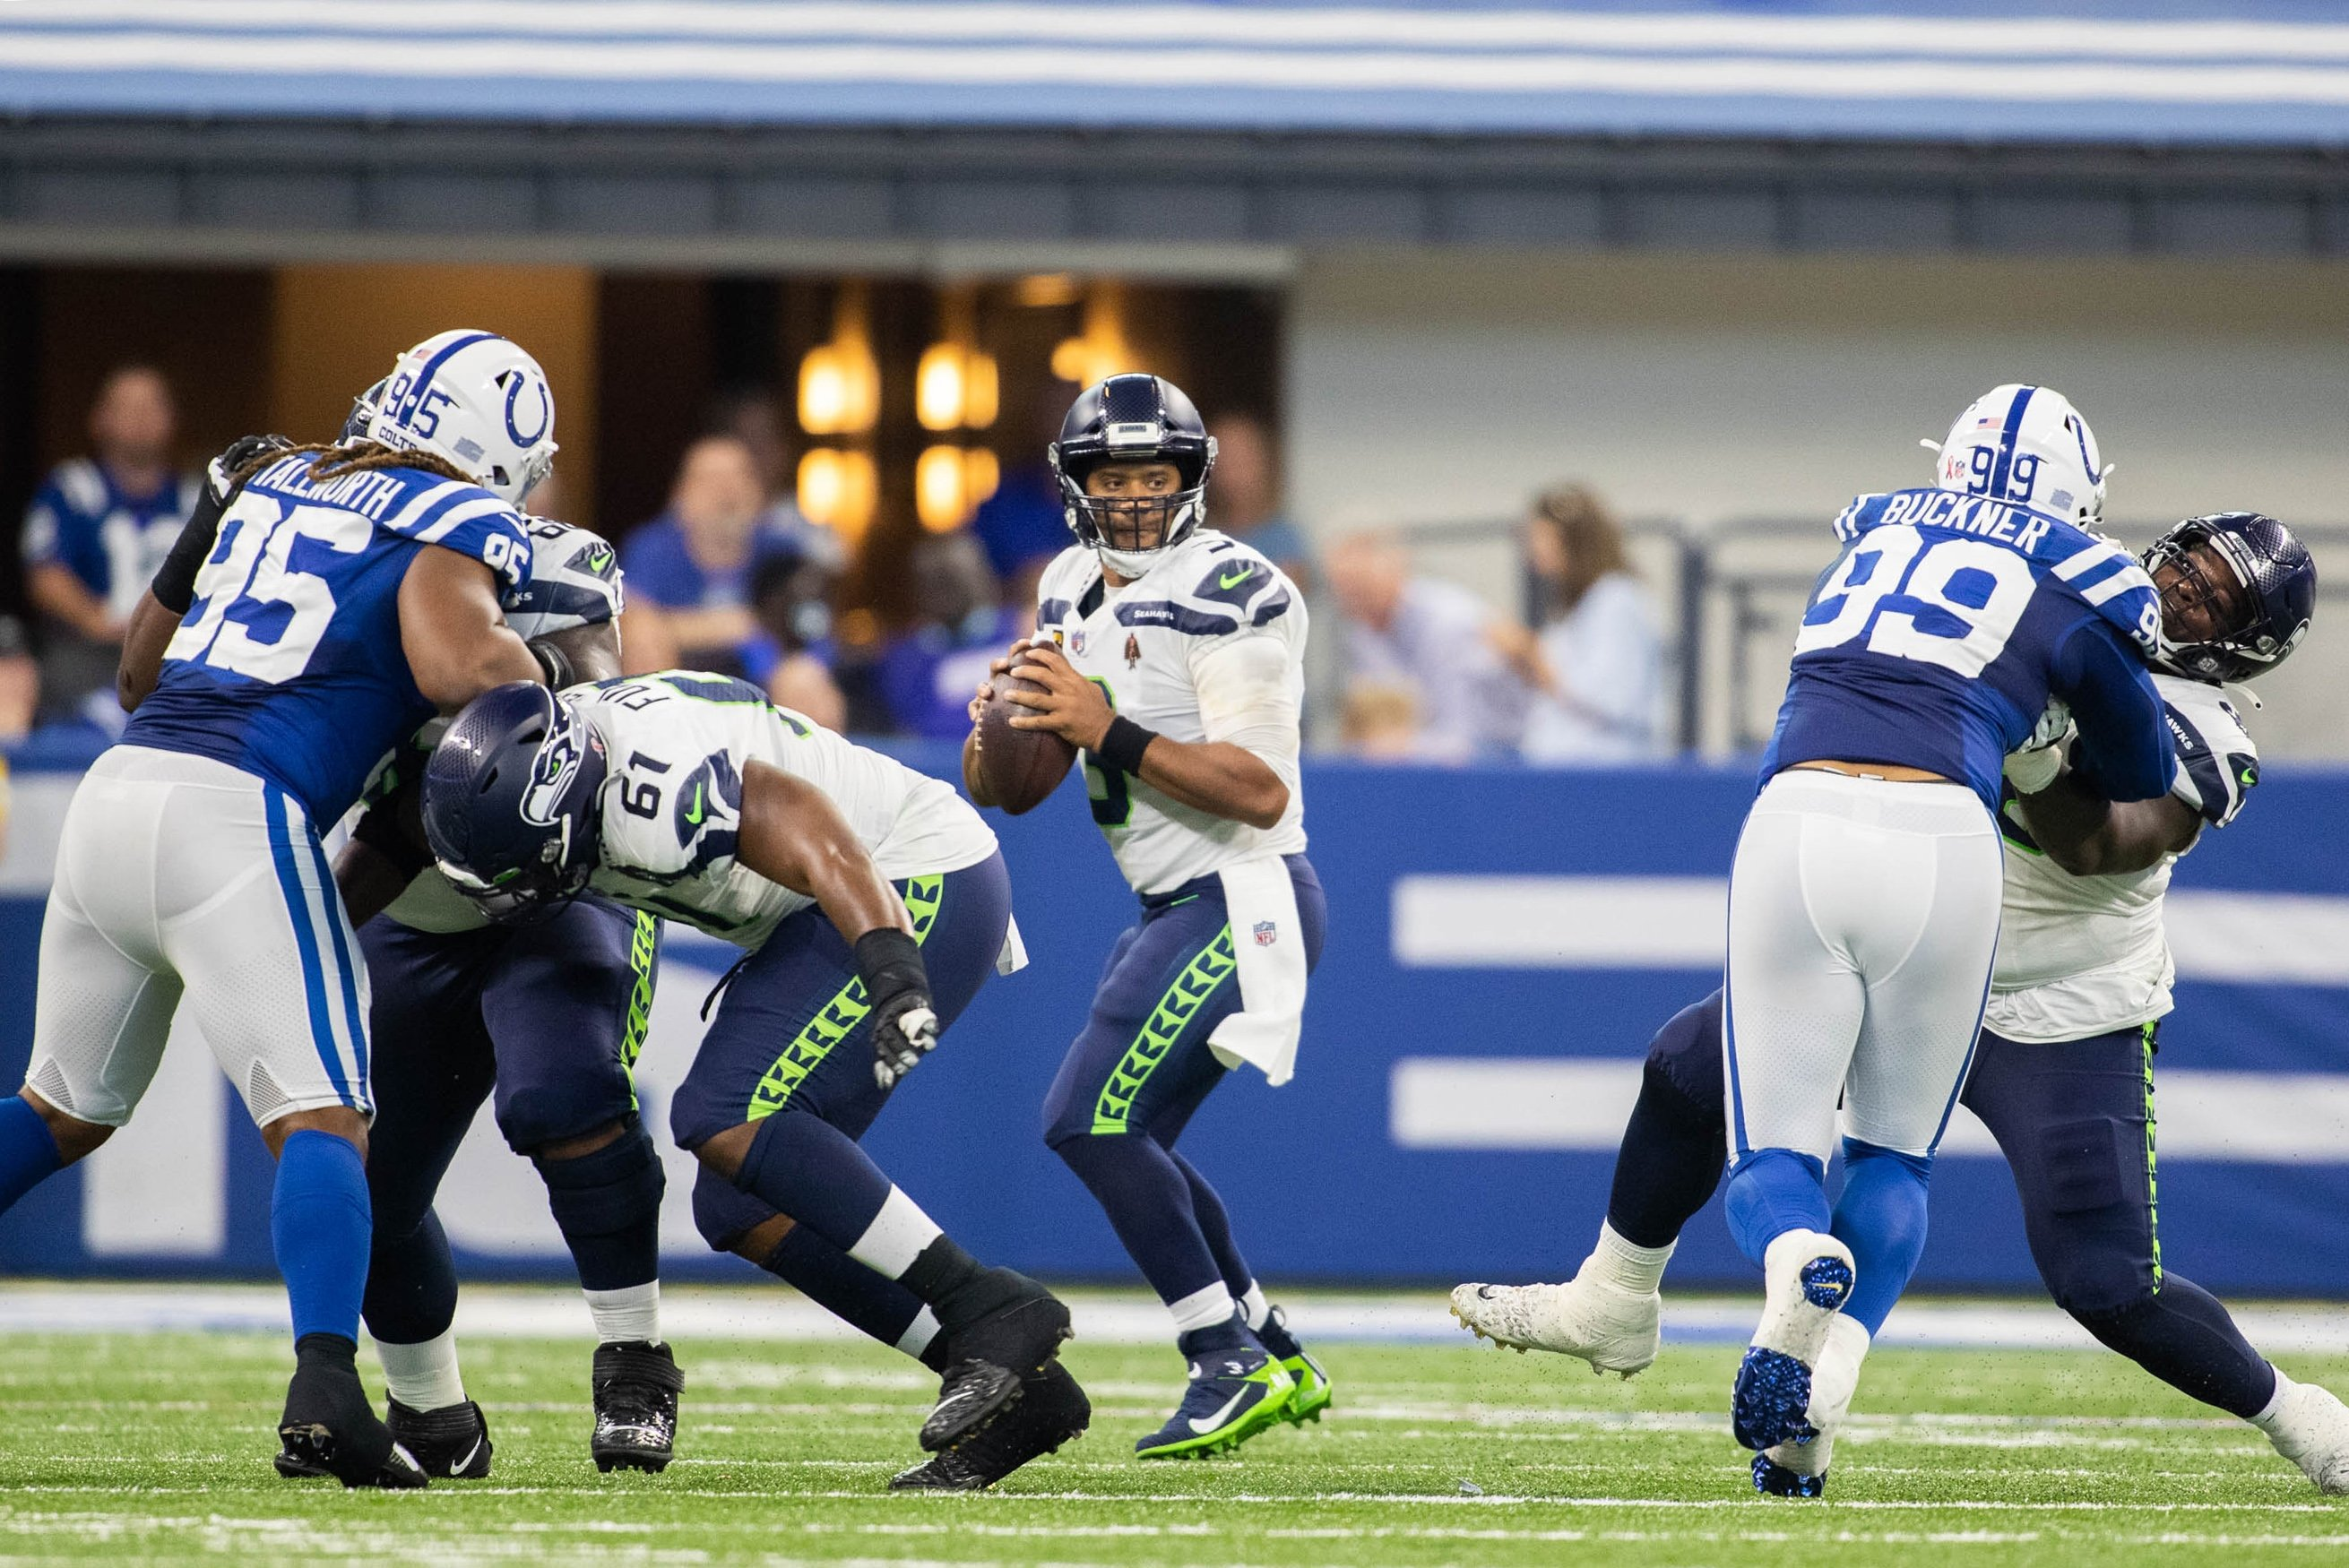 Seattle Seahawks quarterback Russell Wilson (3) looks to pass the ball in the second quarter against the Indianapolis Colts at Lucas Oil Stadium, Indianapolis, Indiana, U.S., Sept. 12, 2021. (Trevor Ruszkowski-USA TODAY Sports via Reuters)